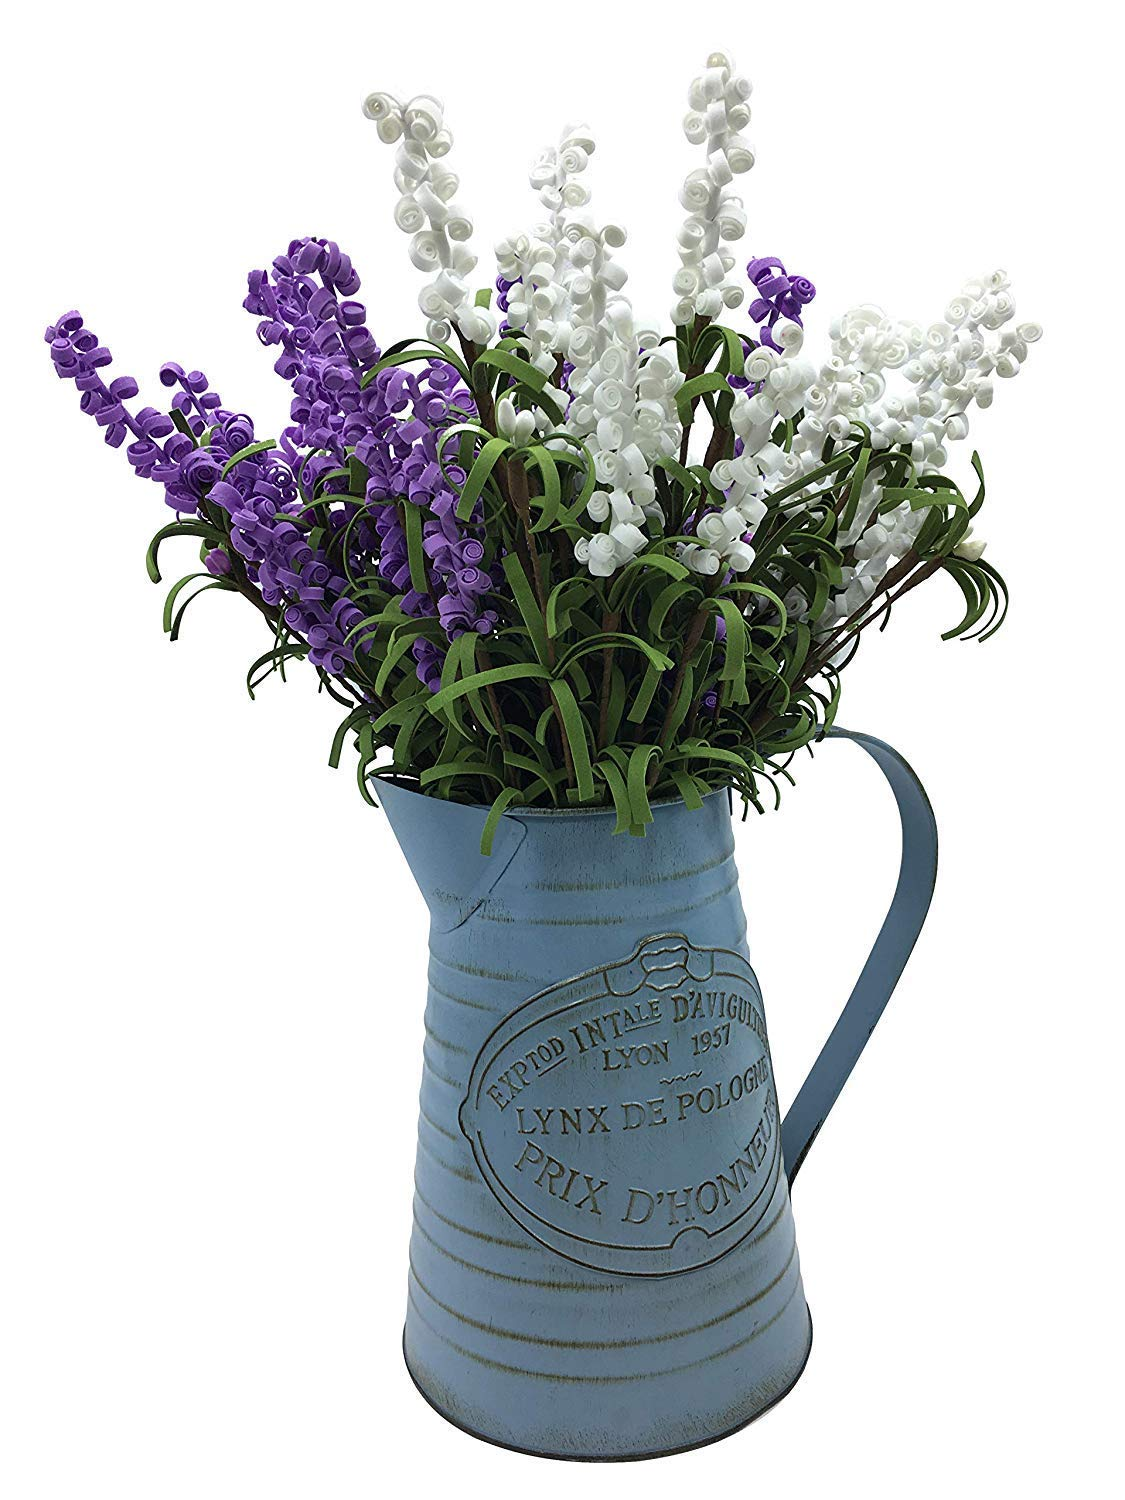 APSOONSELL Shabby Chic Metal Jug Vase Pitcher Flower Holder for Home Decoration by APSOONSELL